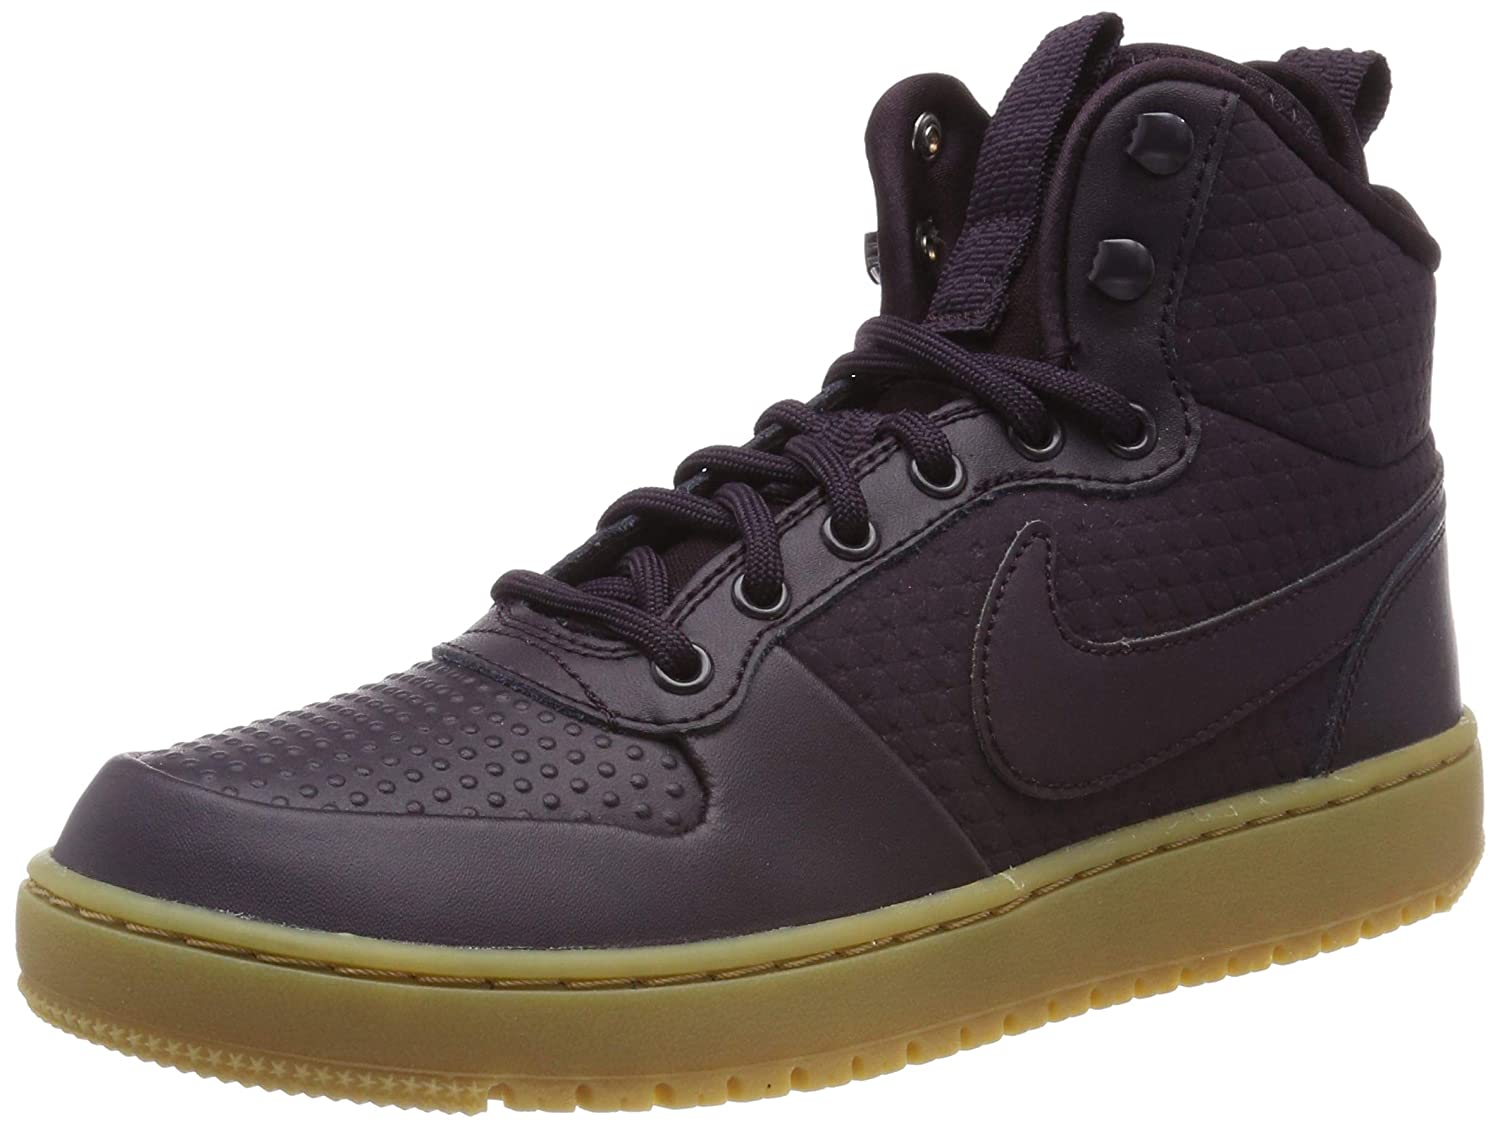 quality design 81374 a75cc Amazon.com   Nike Men s Ebernon Mid Winter Shoe   Shoes